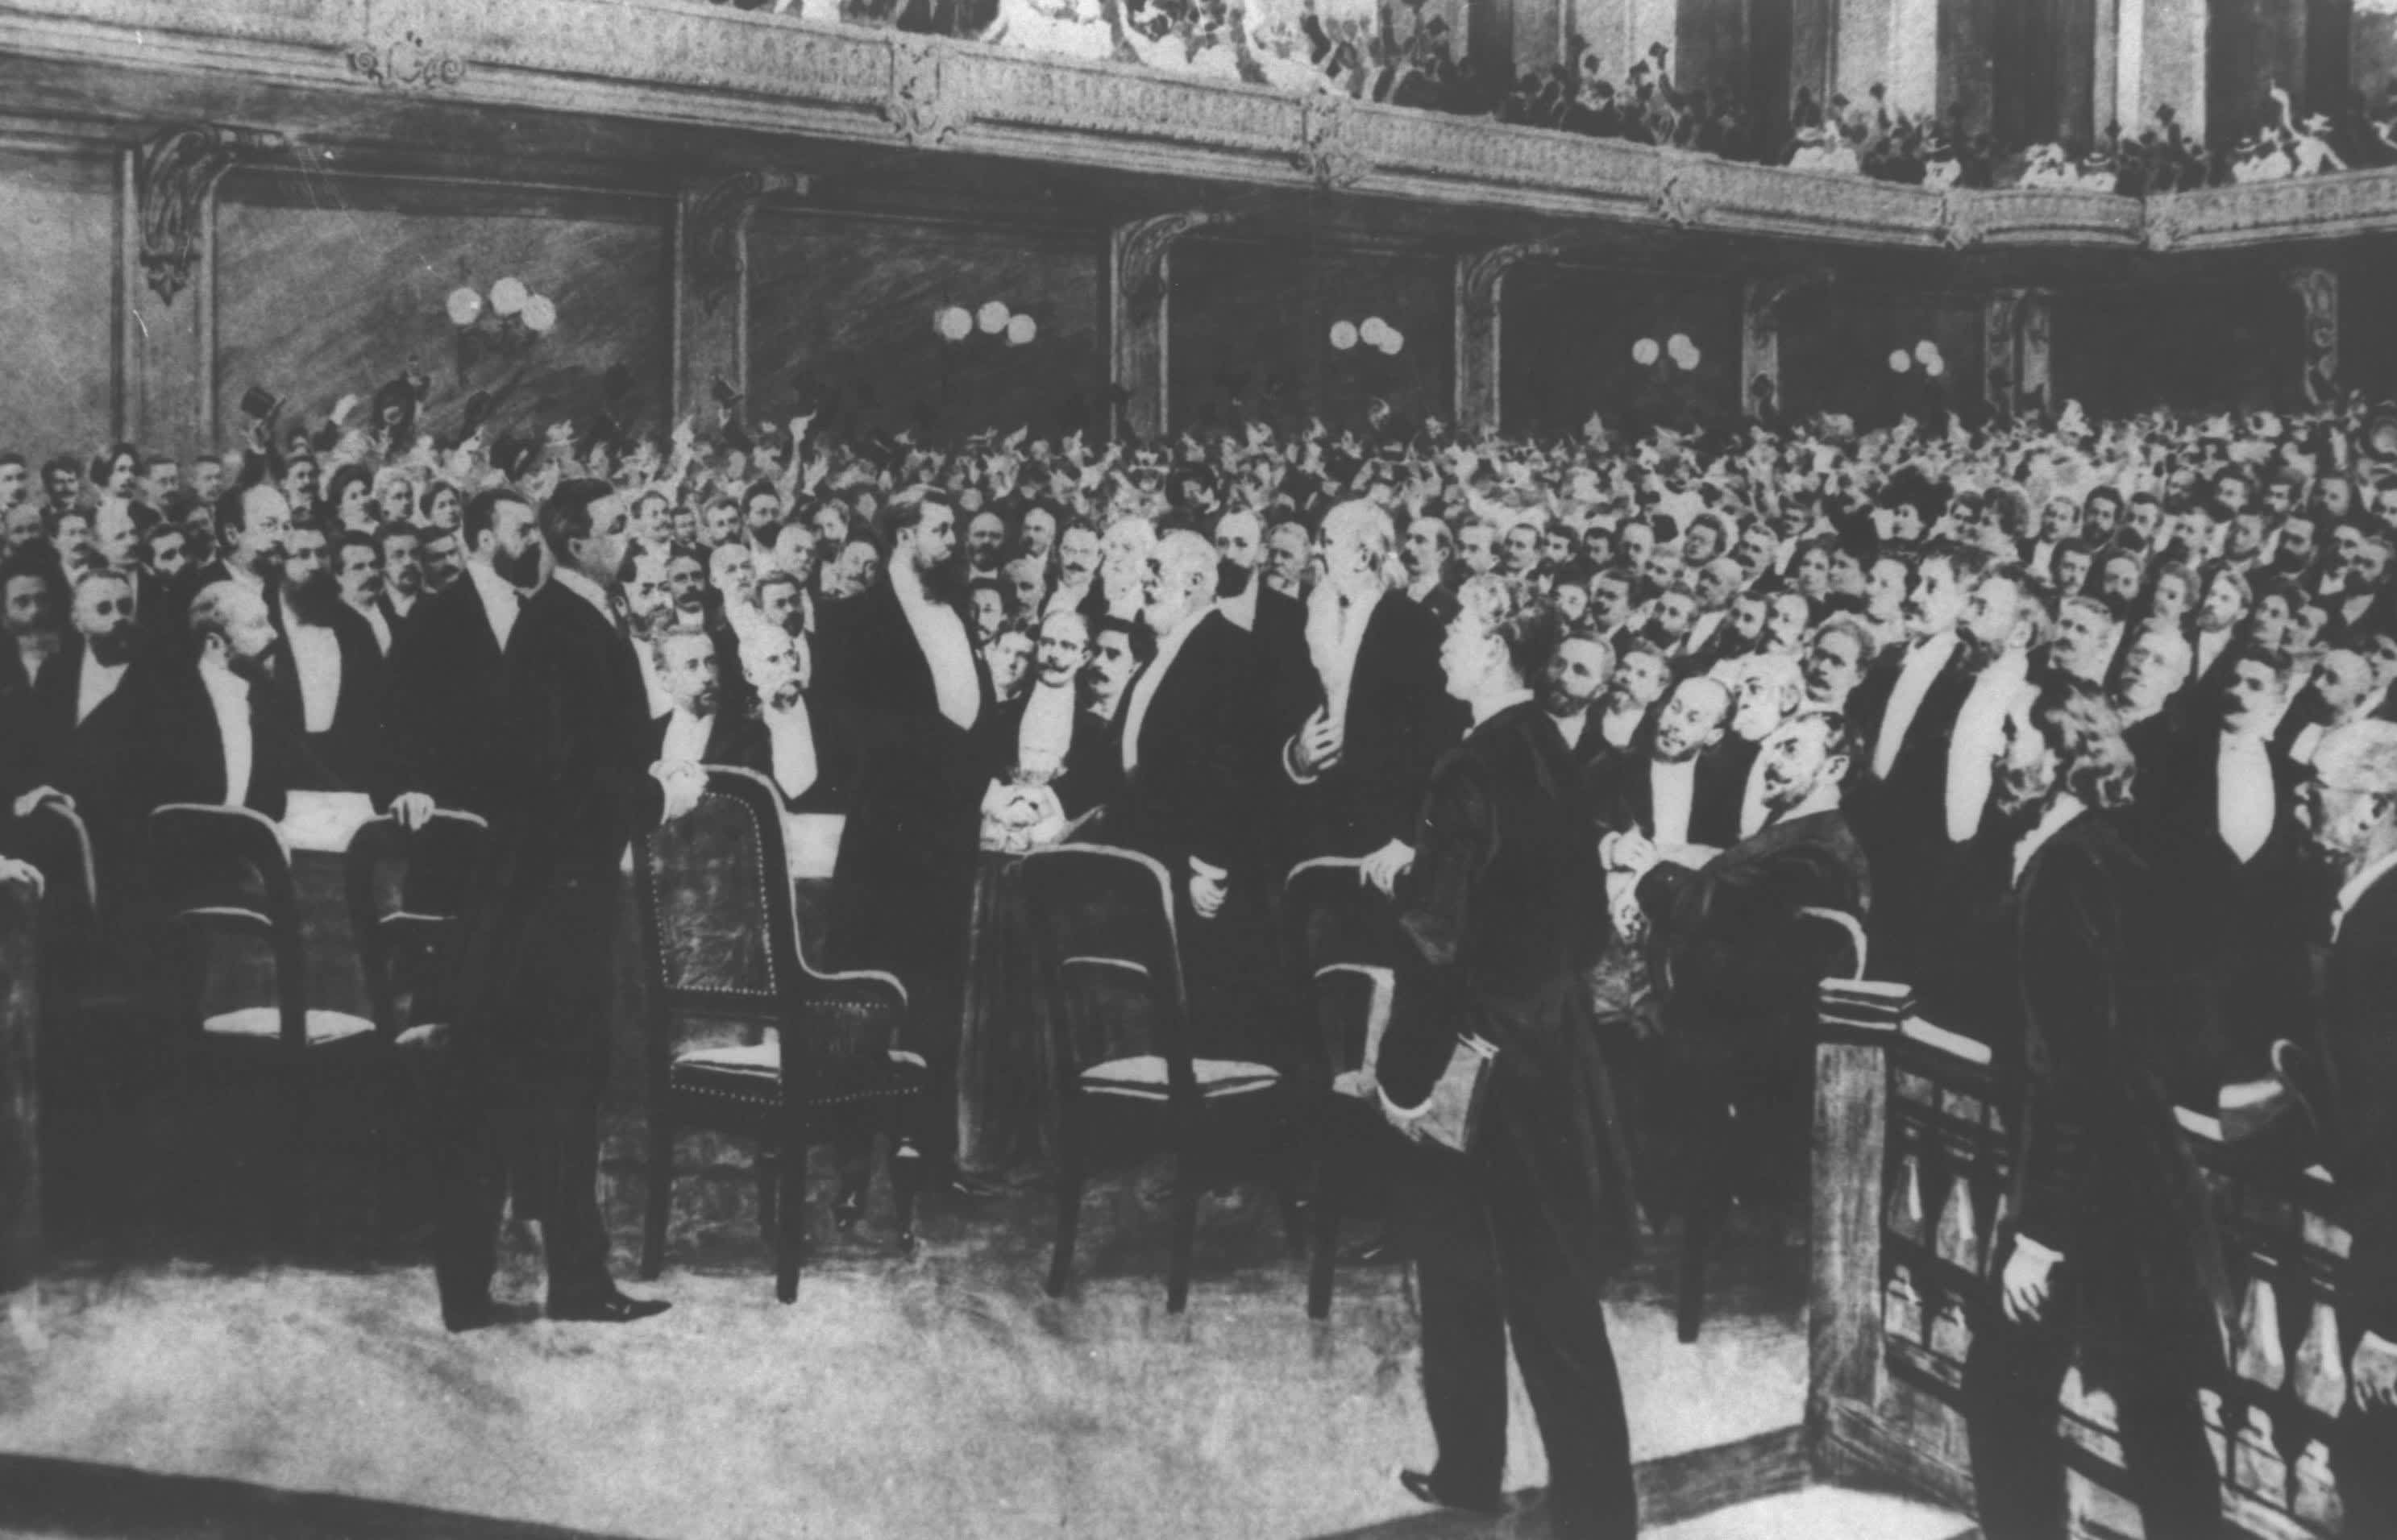 Theodor Herzl at the First Zionist Congress, August 25, 1897 (WIKIMEDIA COMMONS/ISRAEL NATIONAL PHOTO COLLECTION)